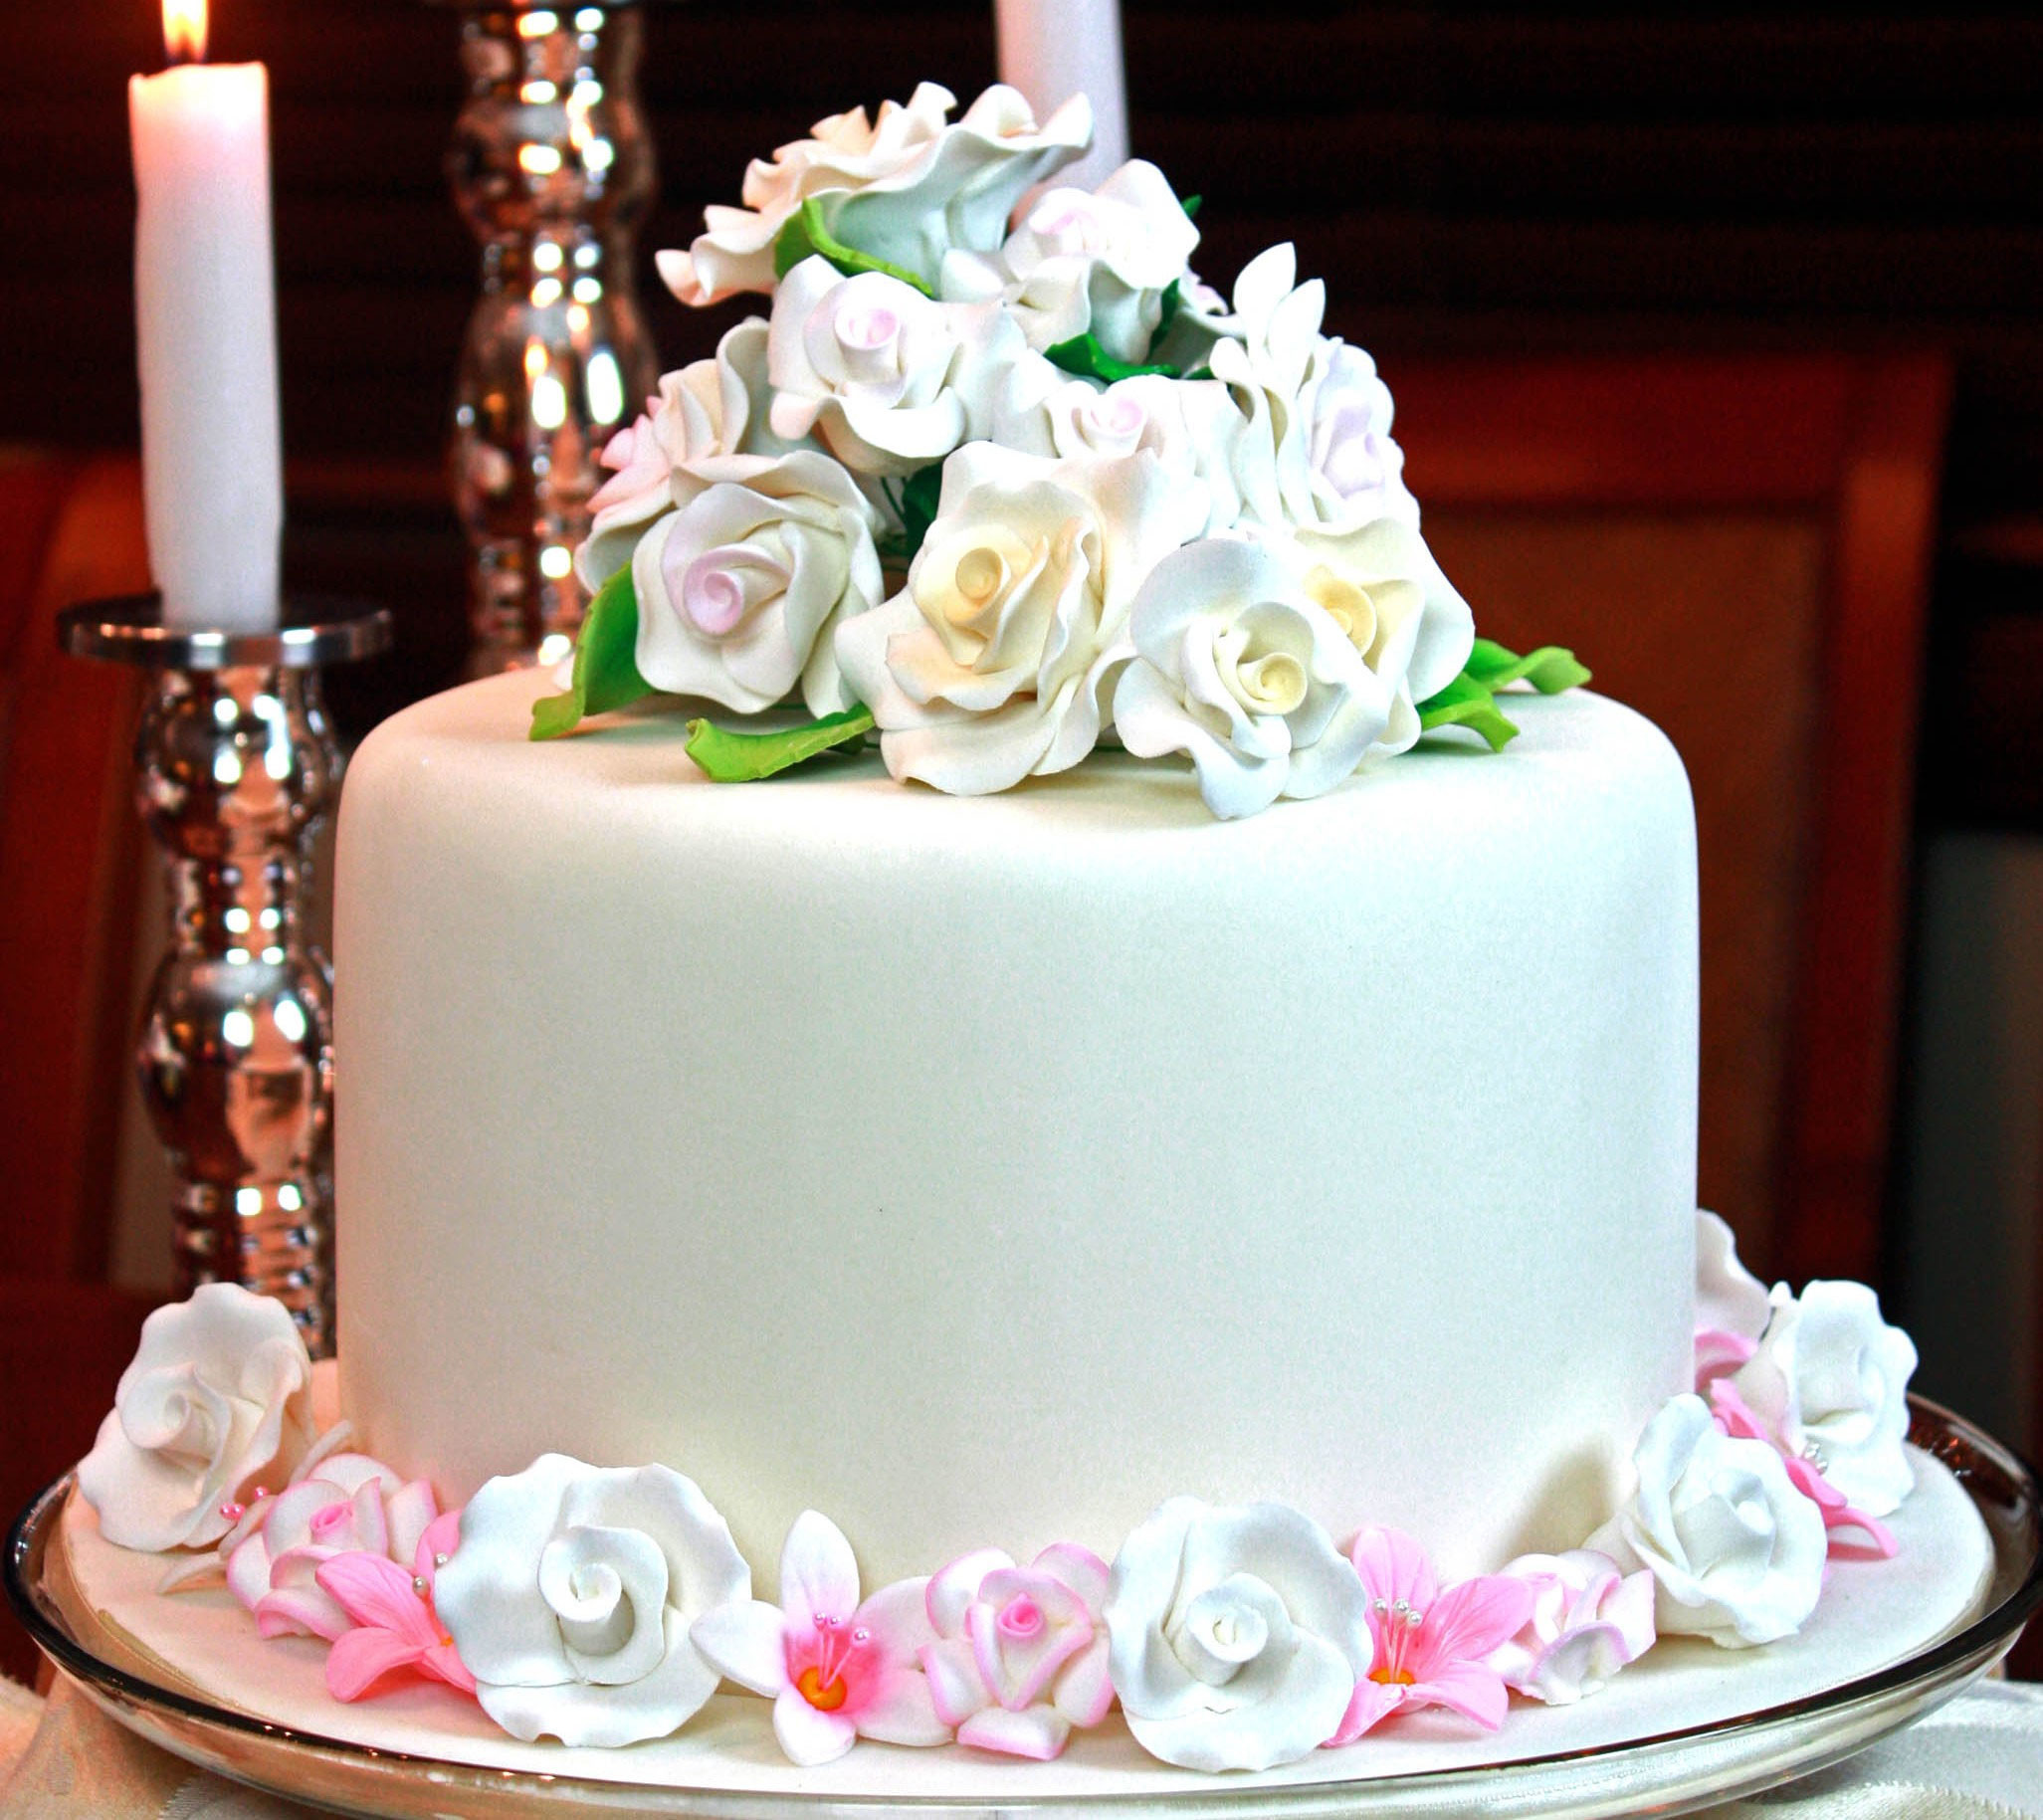 Best ideas about Birthday Cake Wallpaper . Save or Pin Wallpaper Happy Birthday Cake 55 images Now.